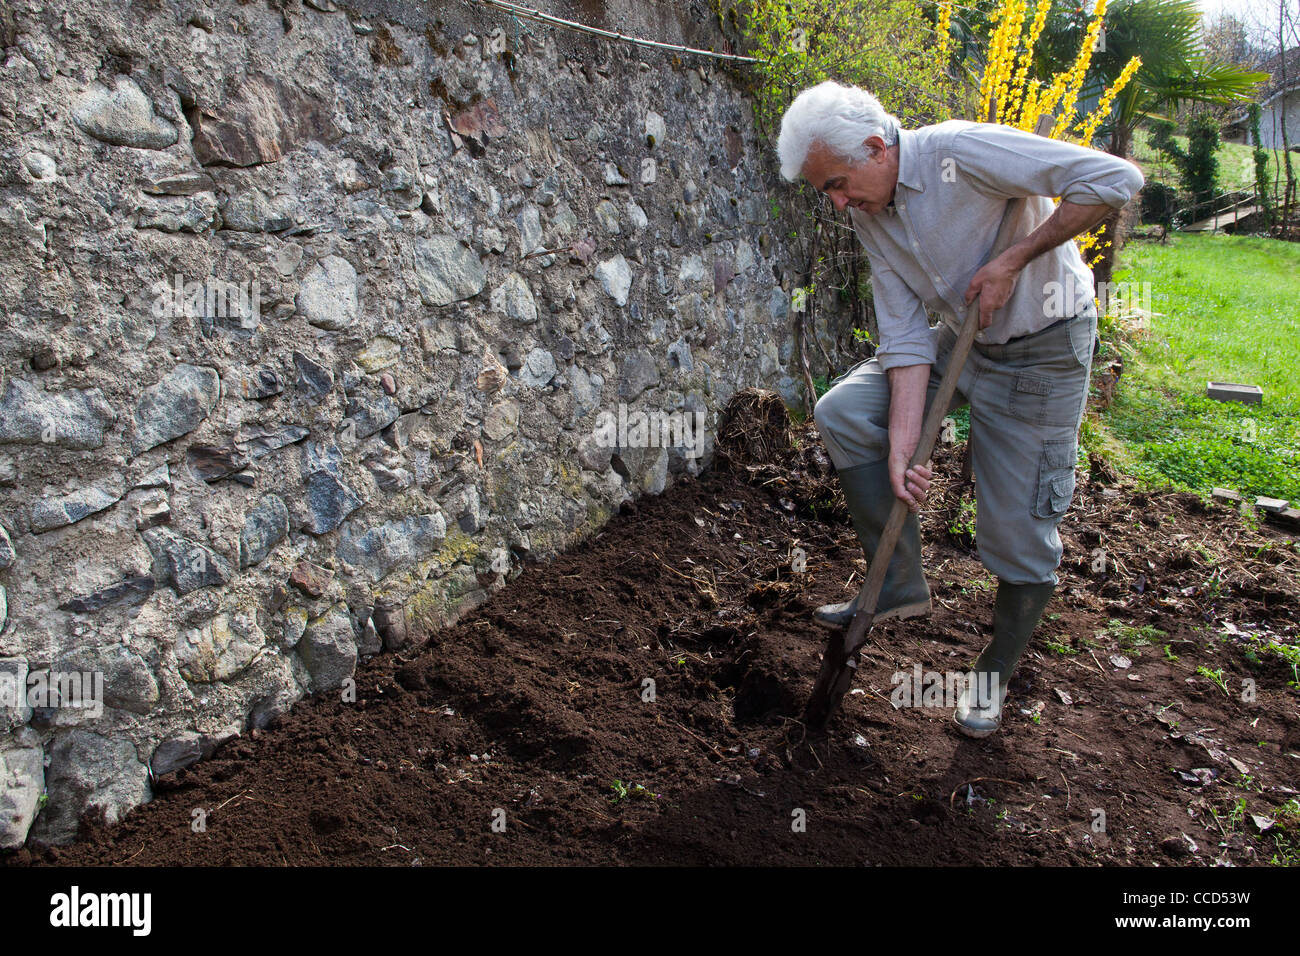 Fertilizing with manure and digging, step 4, with a shovel, turns the ground - Stock Image